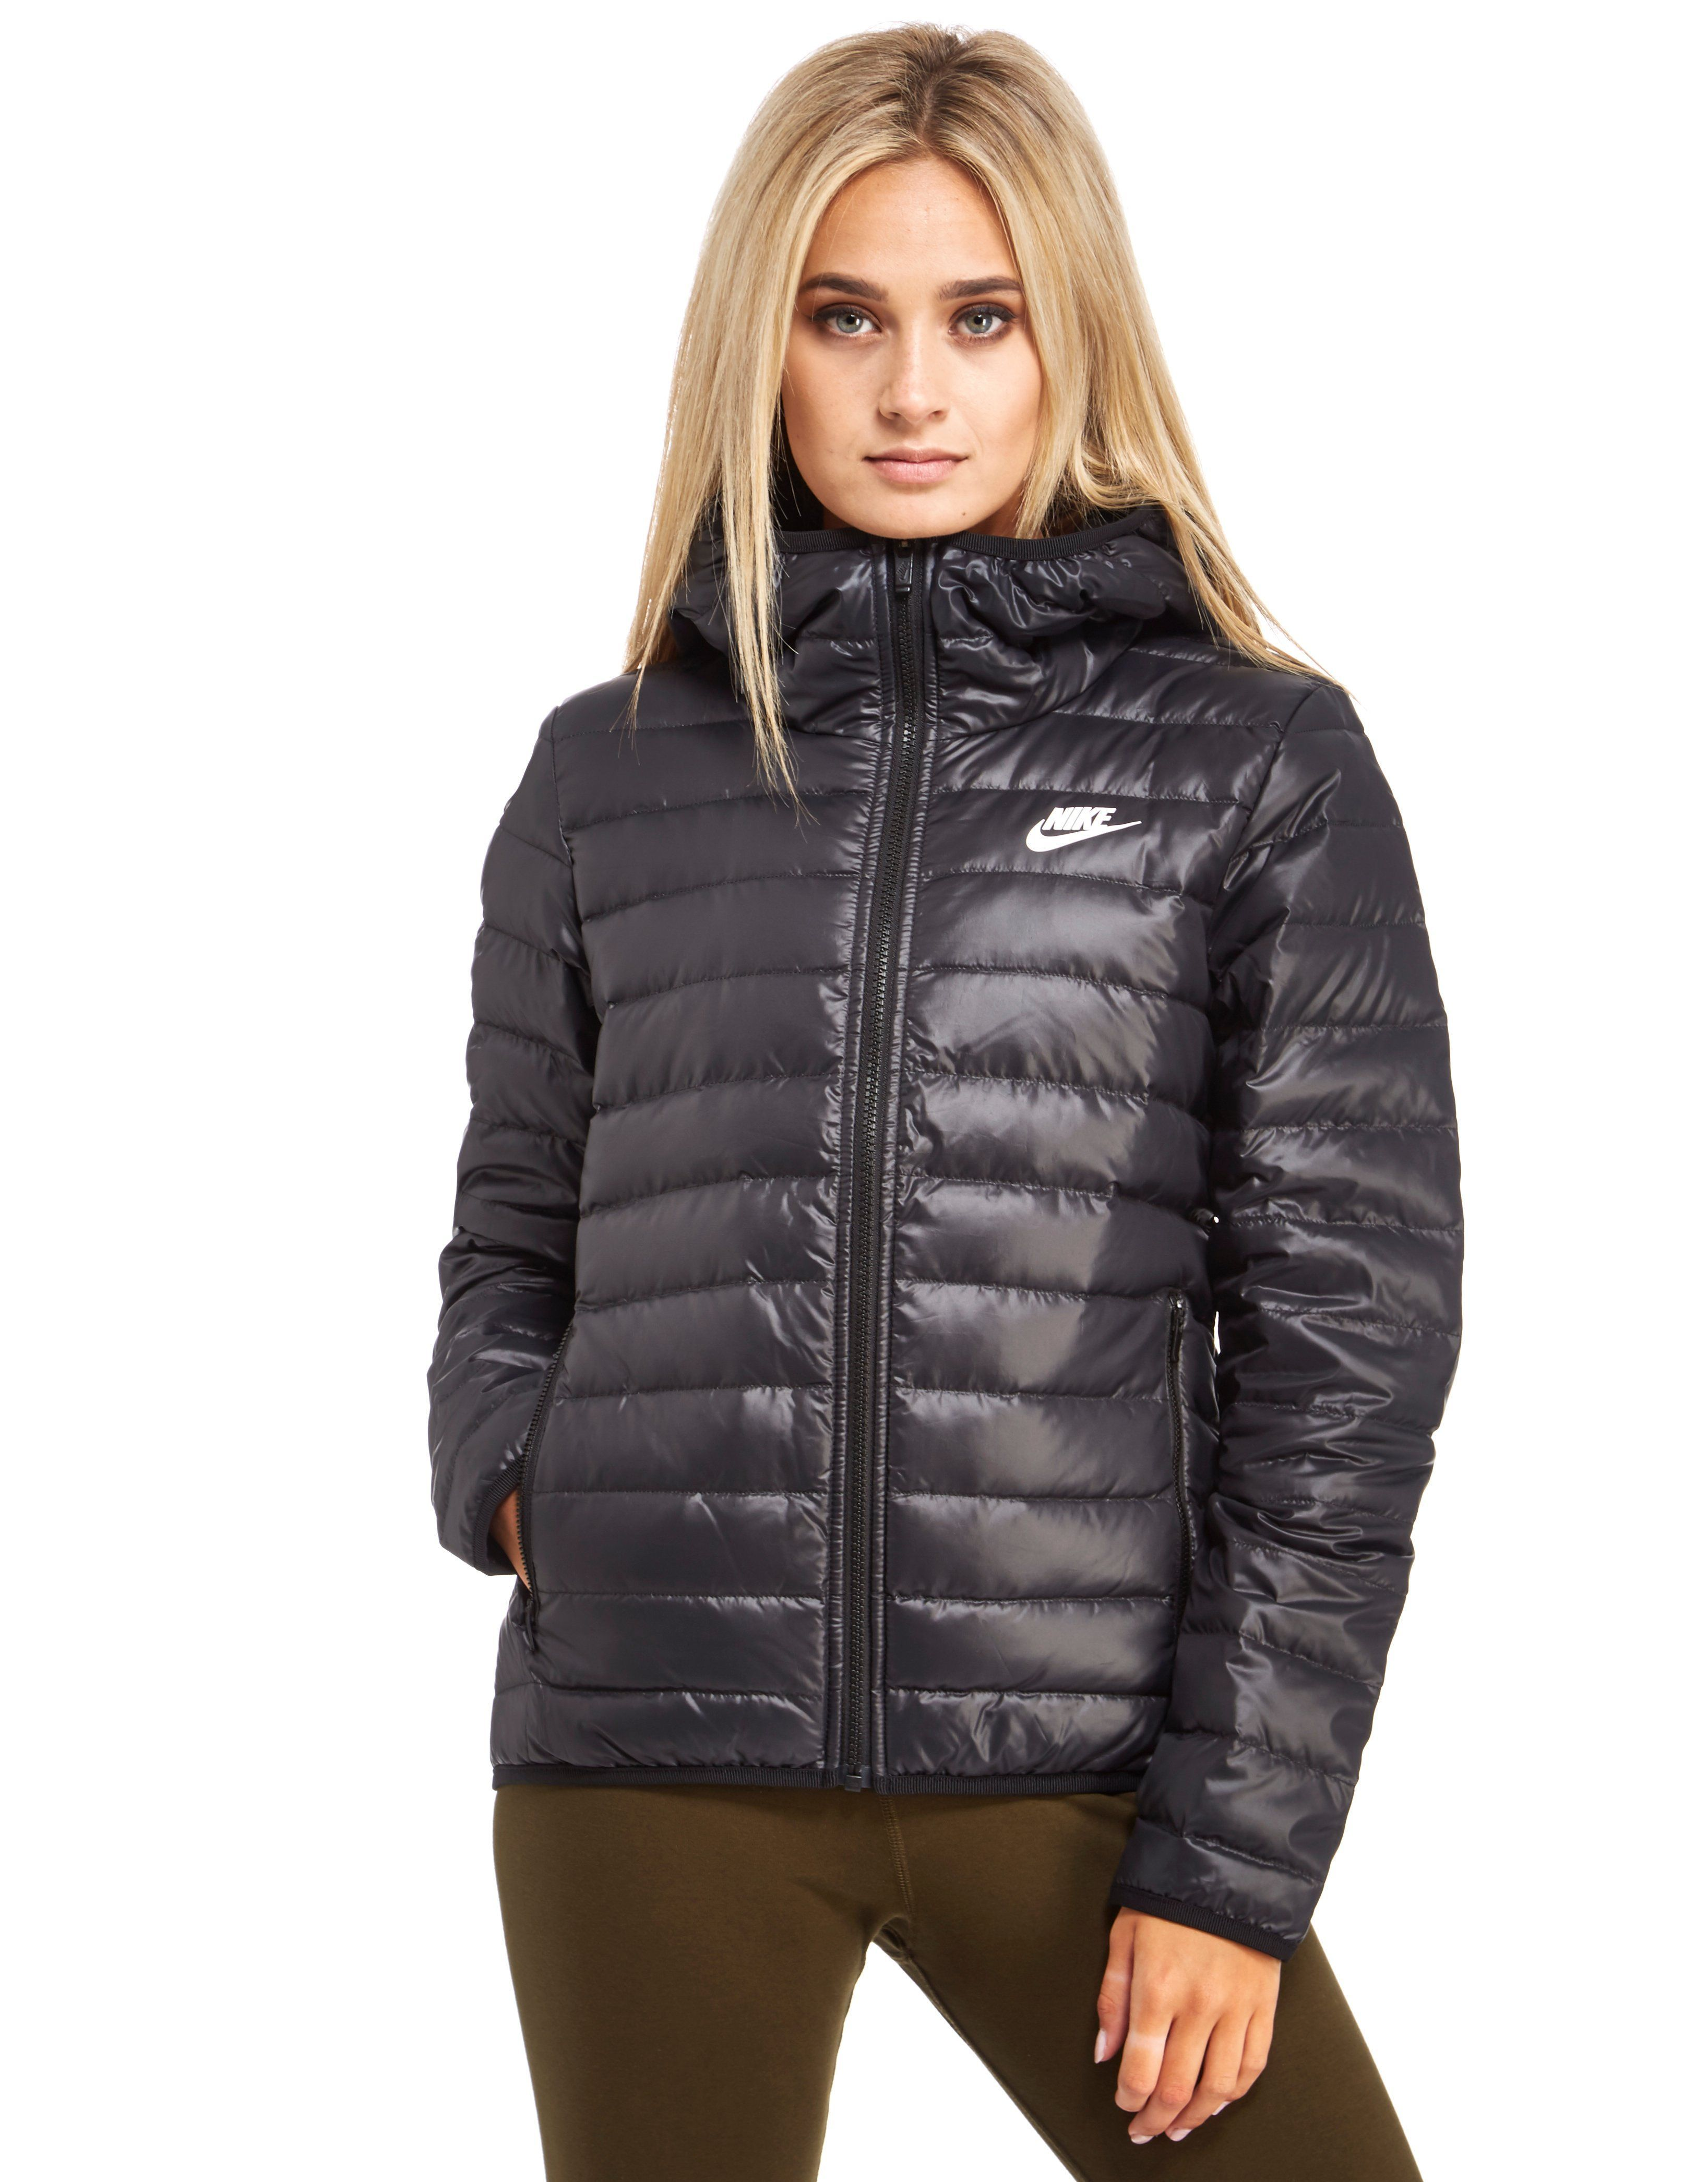 puffer jacket women's with fur hood Puffer jacket women